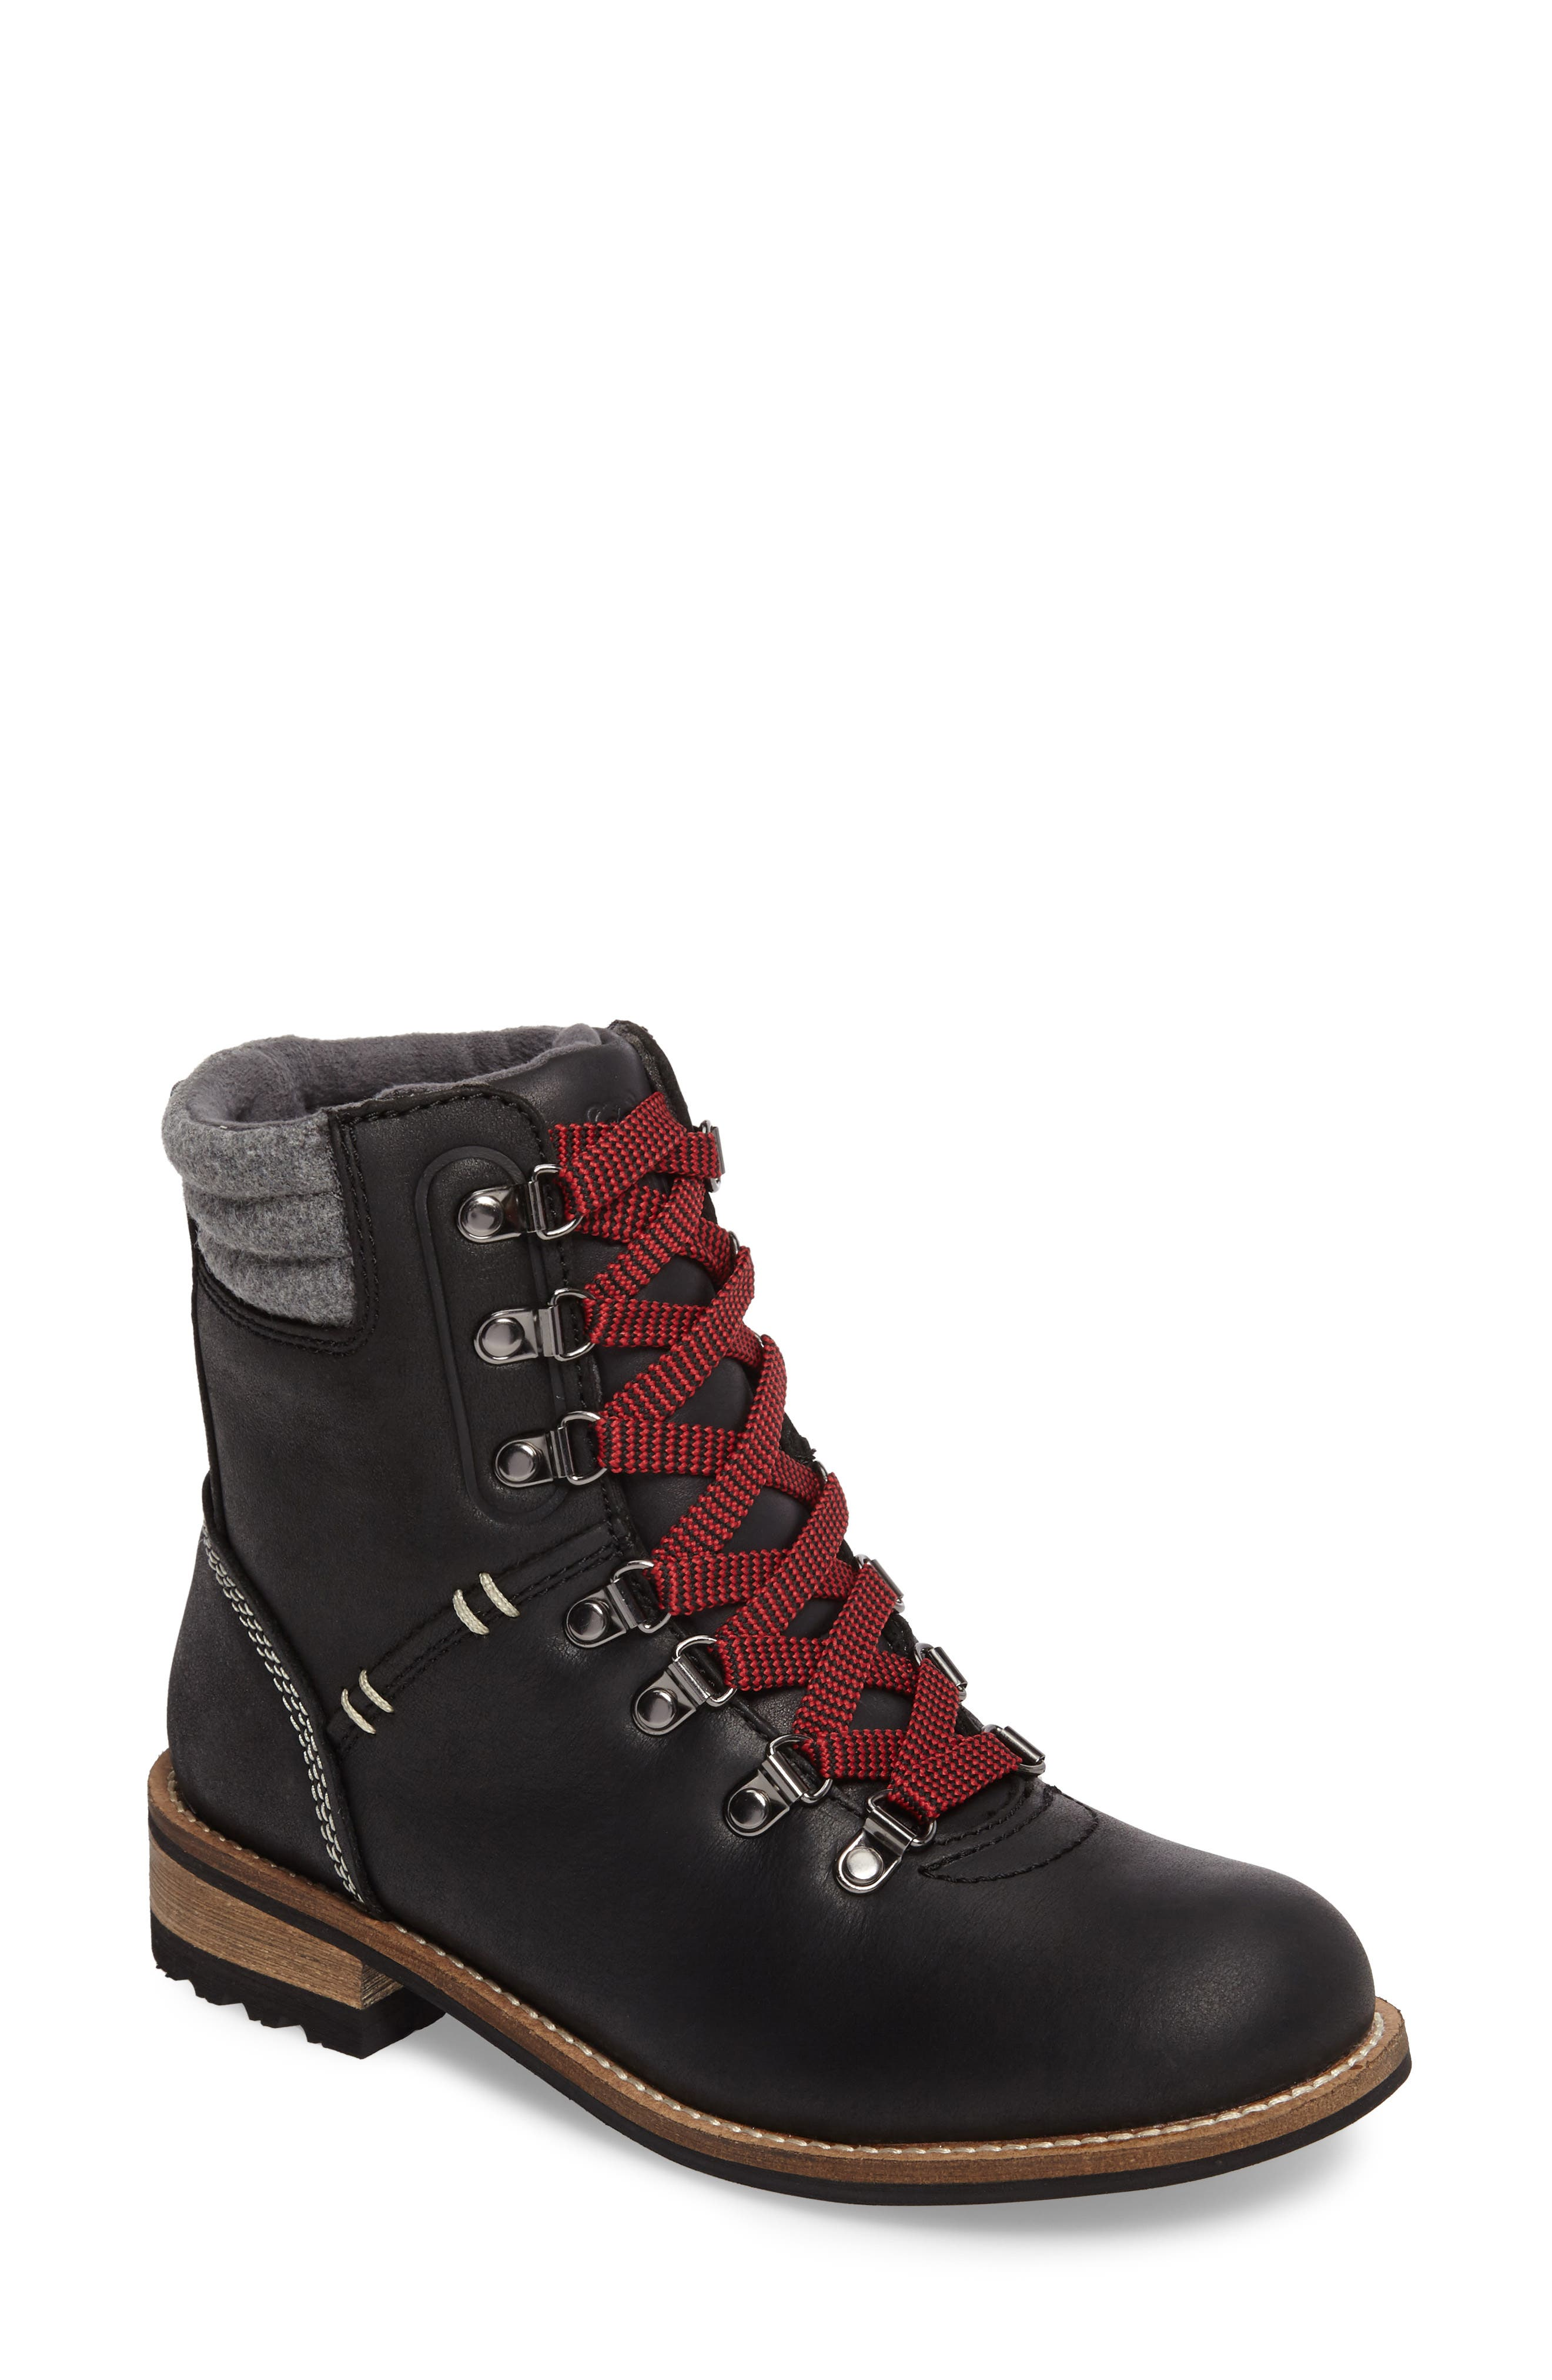 Surrey II Waterproof Boot,                         Main,                         color, BLACK LEATHER